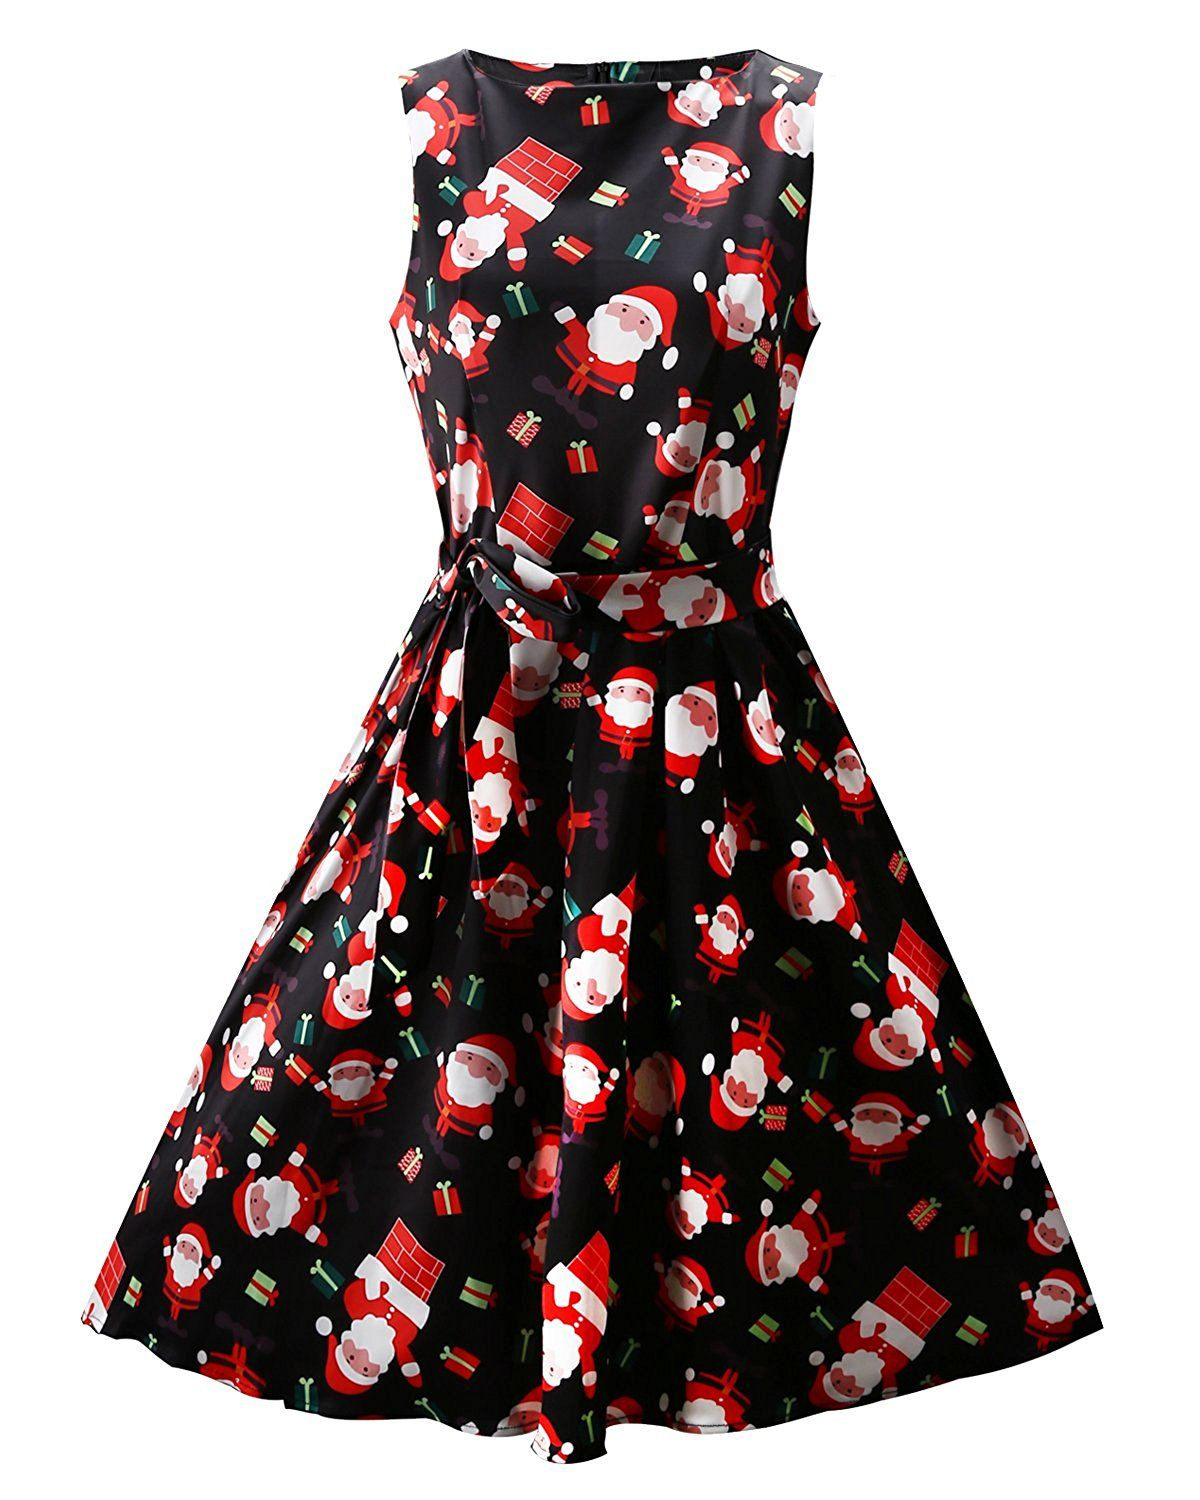 OUGES Women\'s Christmas Gifts Fit and Flare Cocktail Dress | Women\'s ...